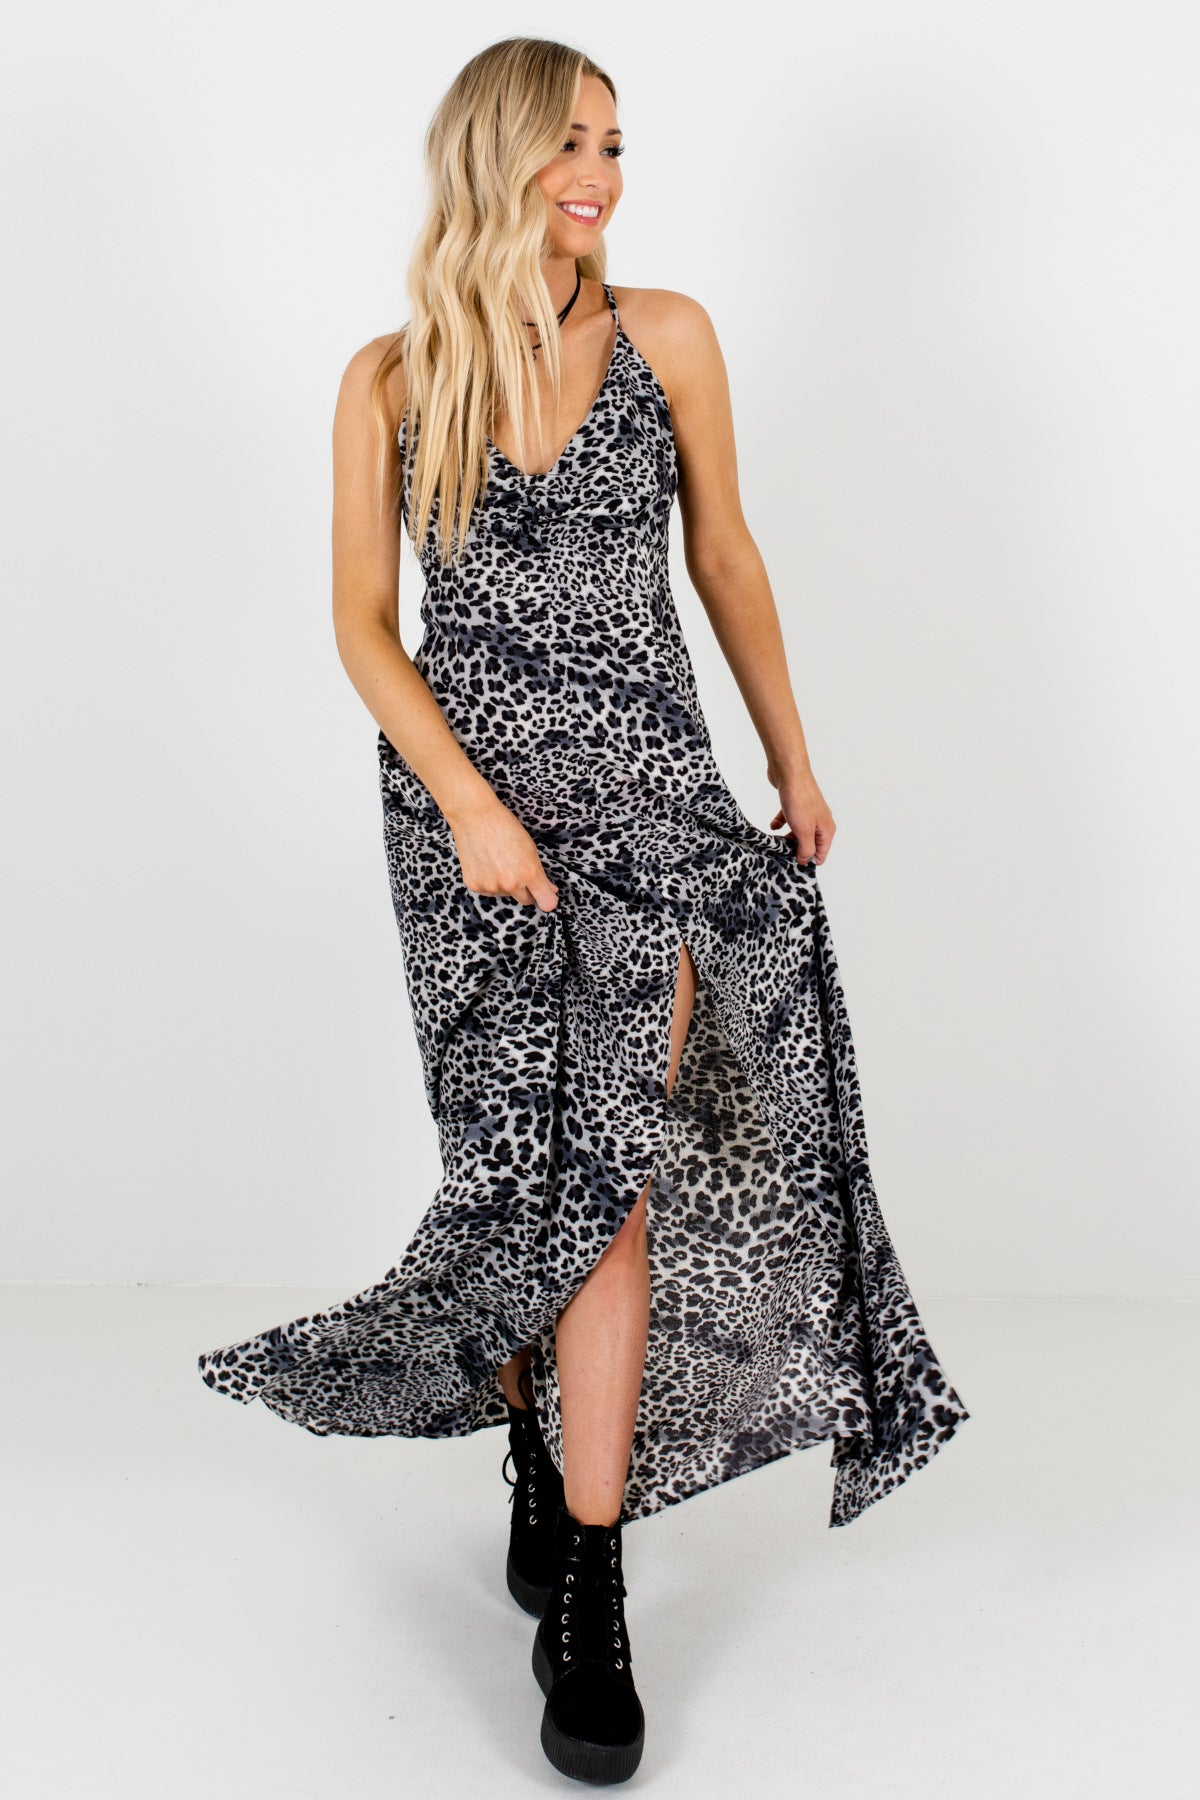 Gray Leopard Print Animal Print Boutique Maxi Dresses for Parties